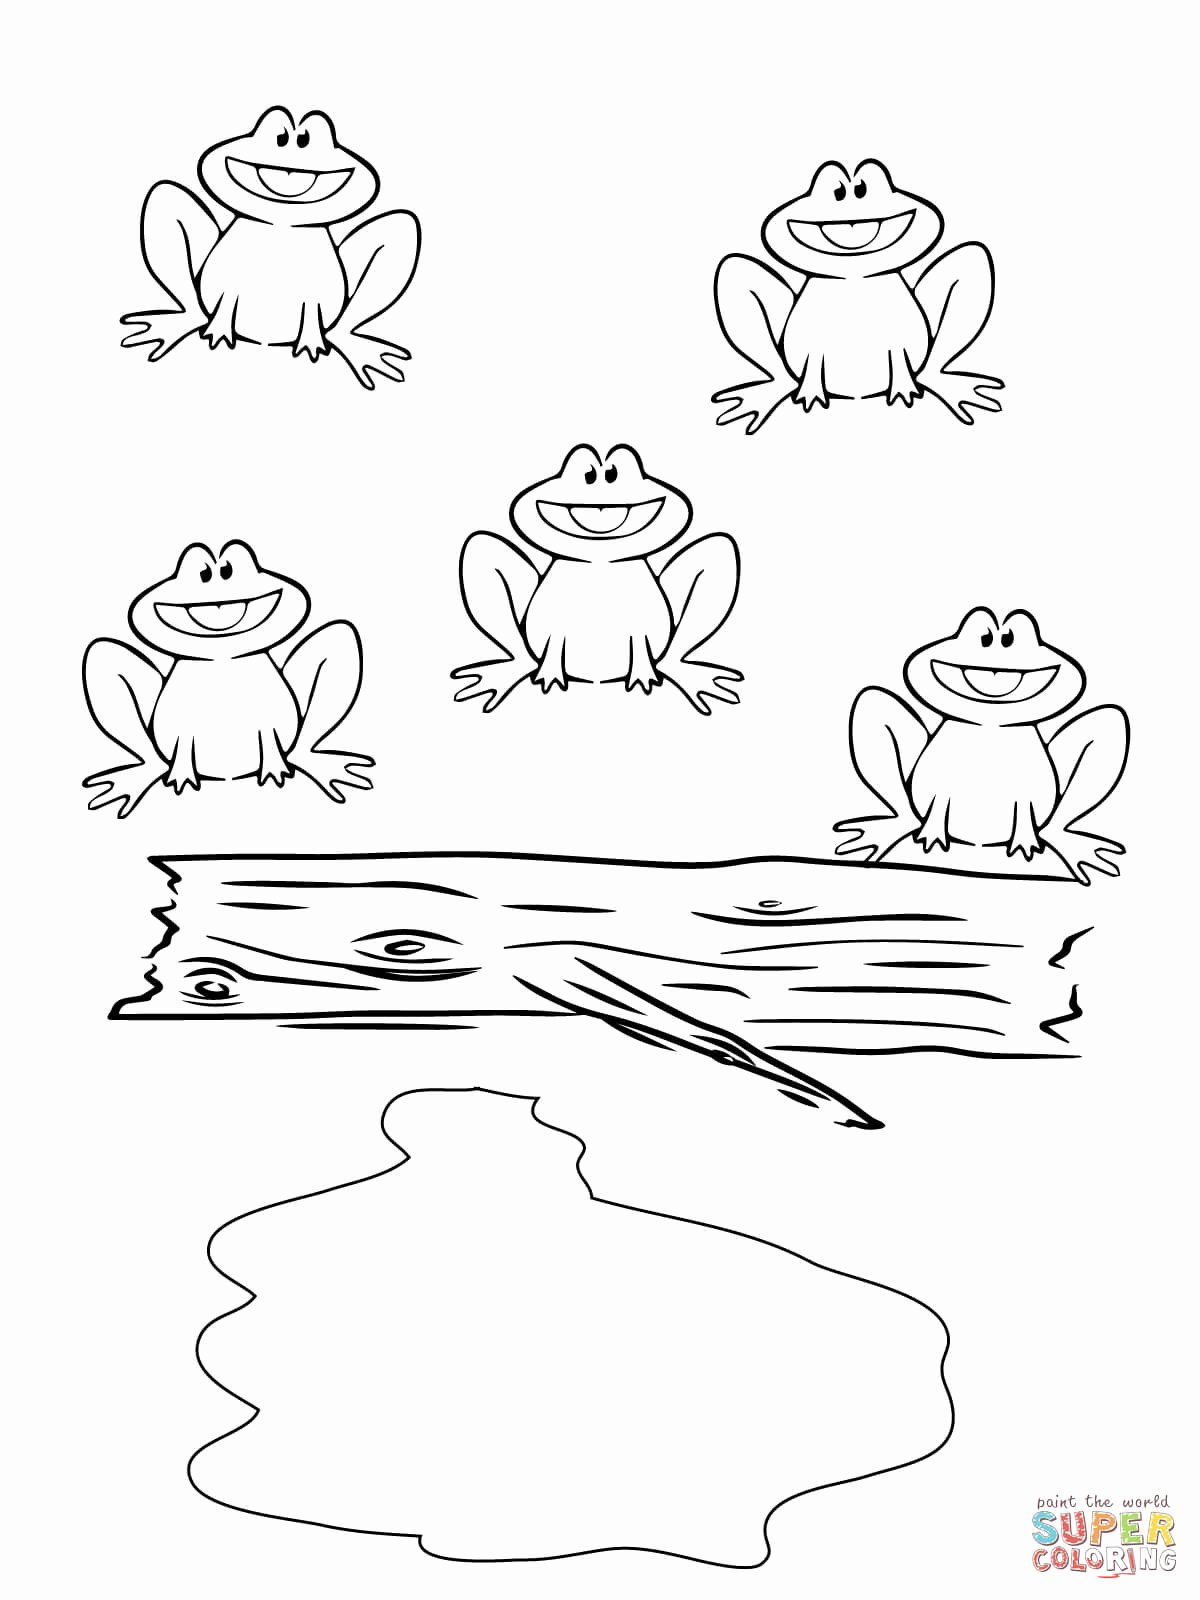 Frog Worksheets For Preschoolers